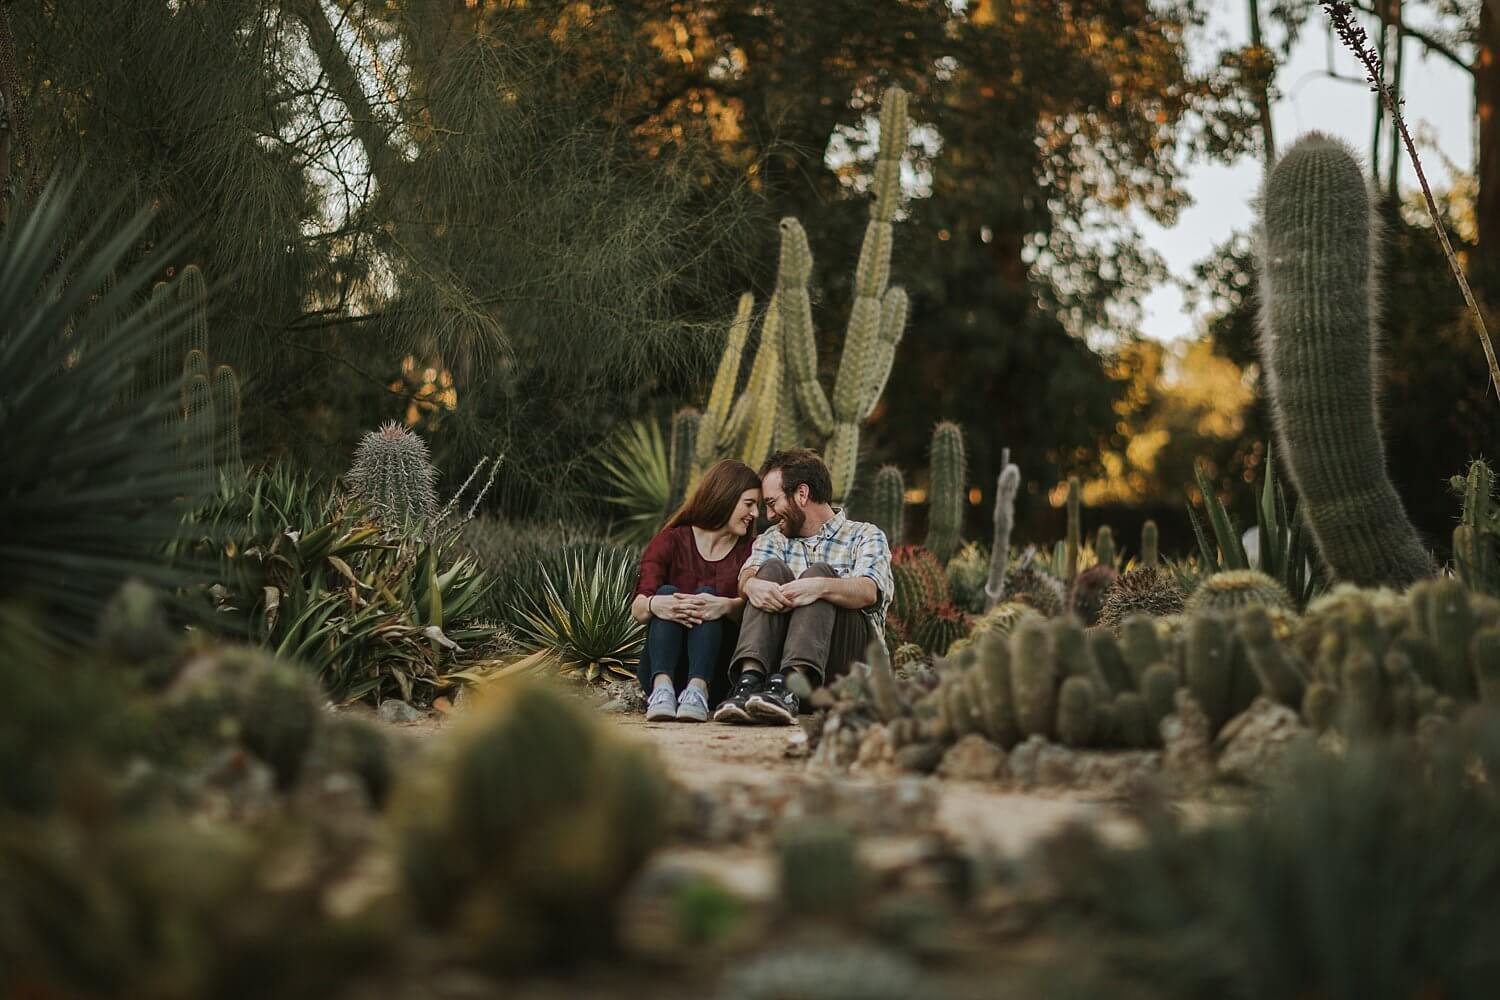 ... Cute, And Silly Engagement Shoot In Palo Alto On Stanford Campus  Arizona Cactus ...